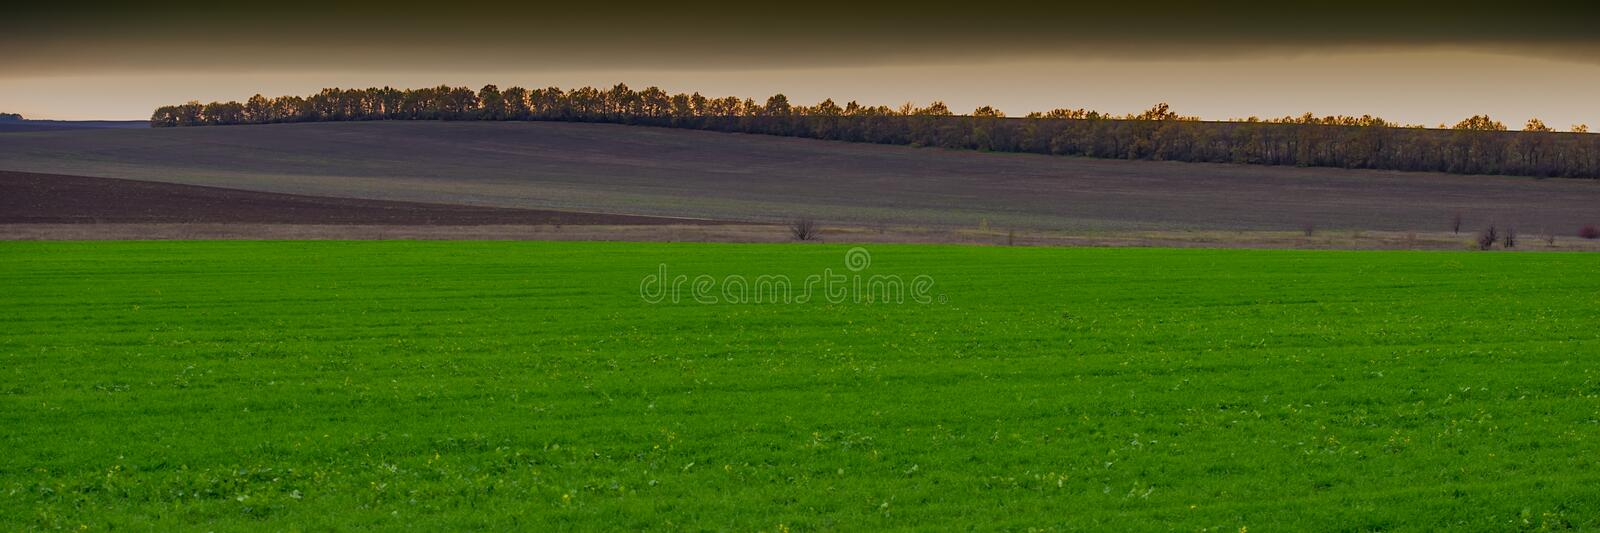 Green field of winter wheat against the background of a plowed field in a hilly area, landscape panorama. Web banner stock photo